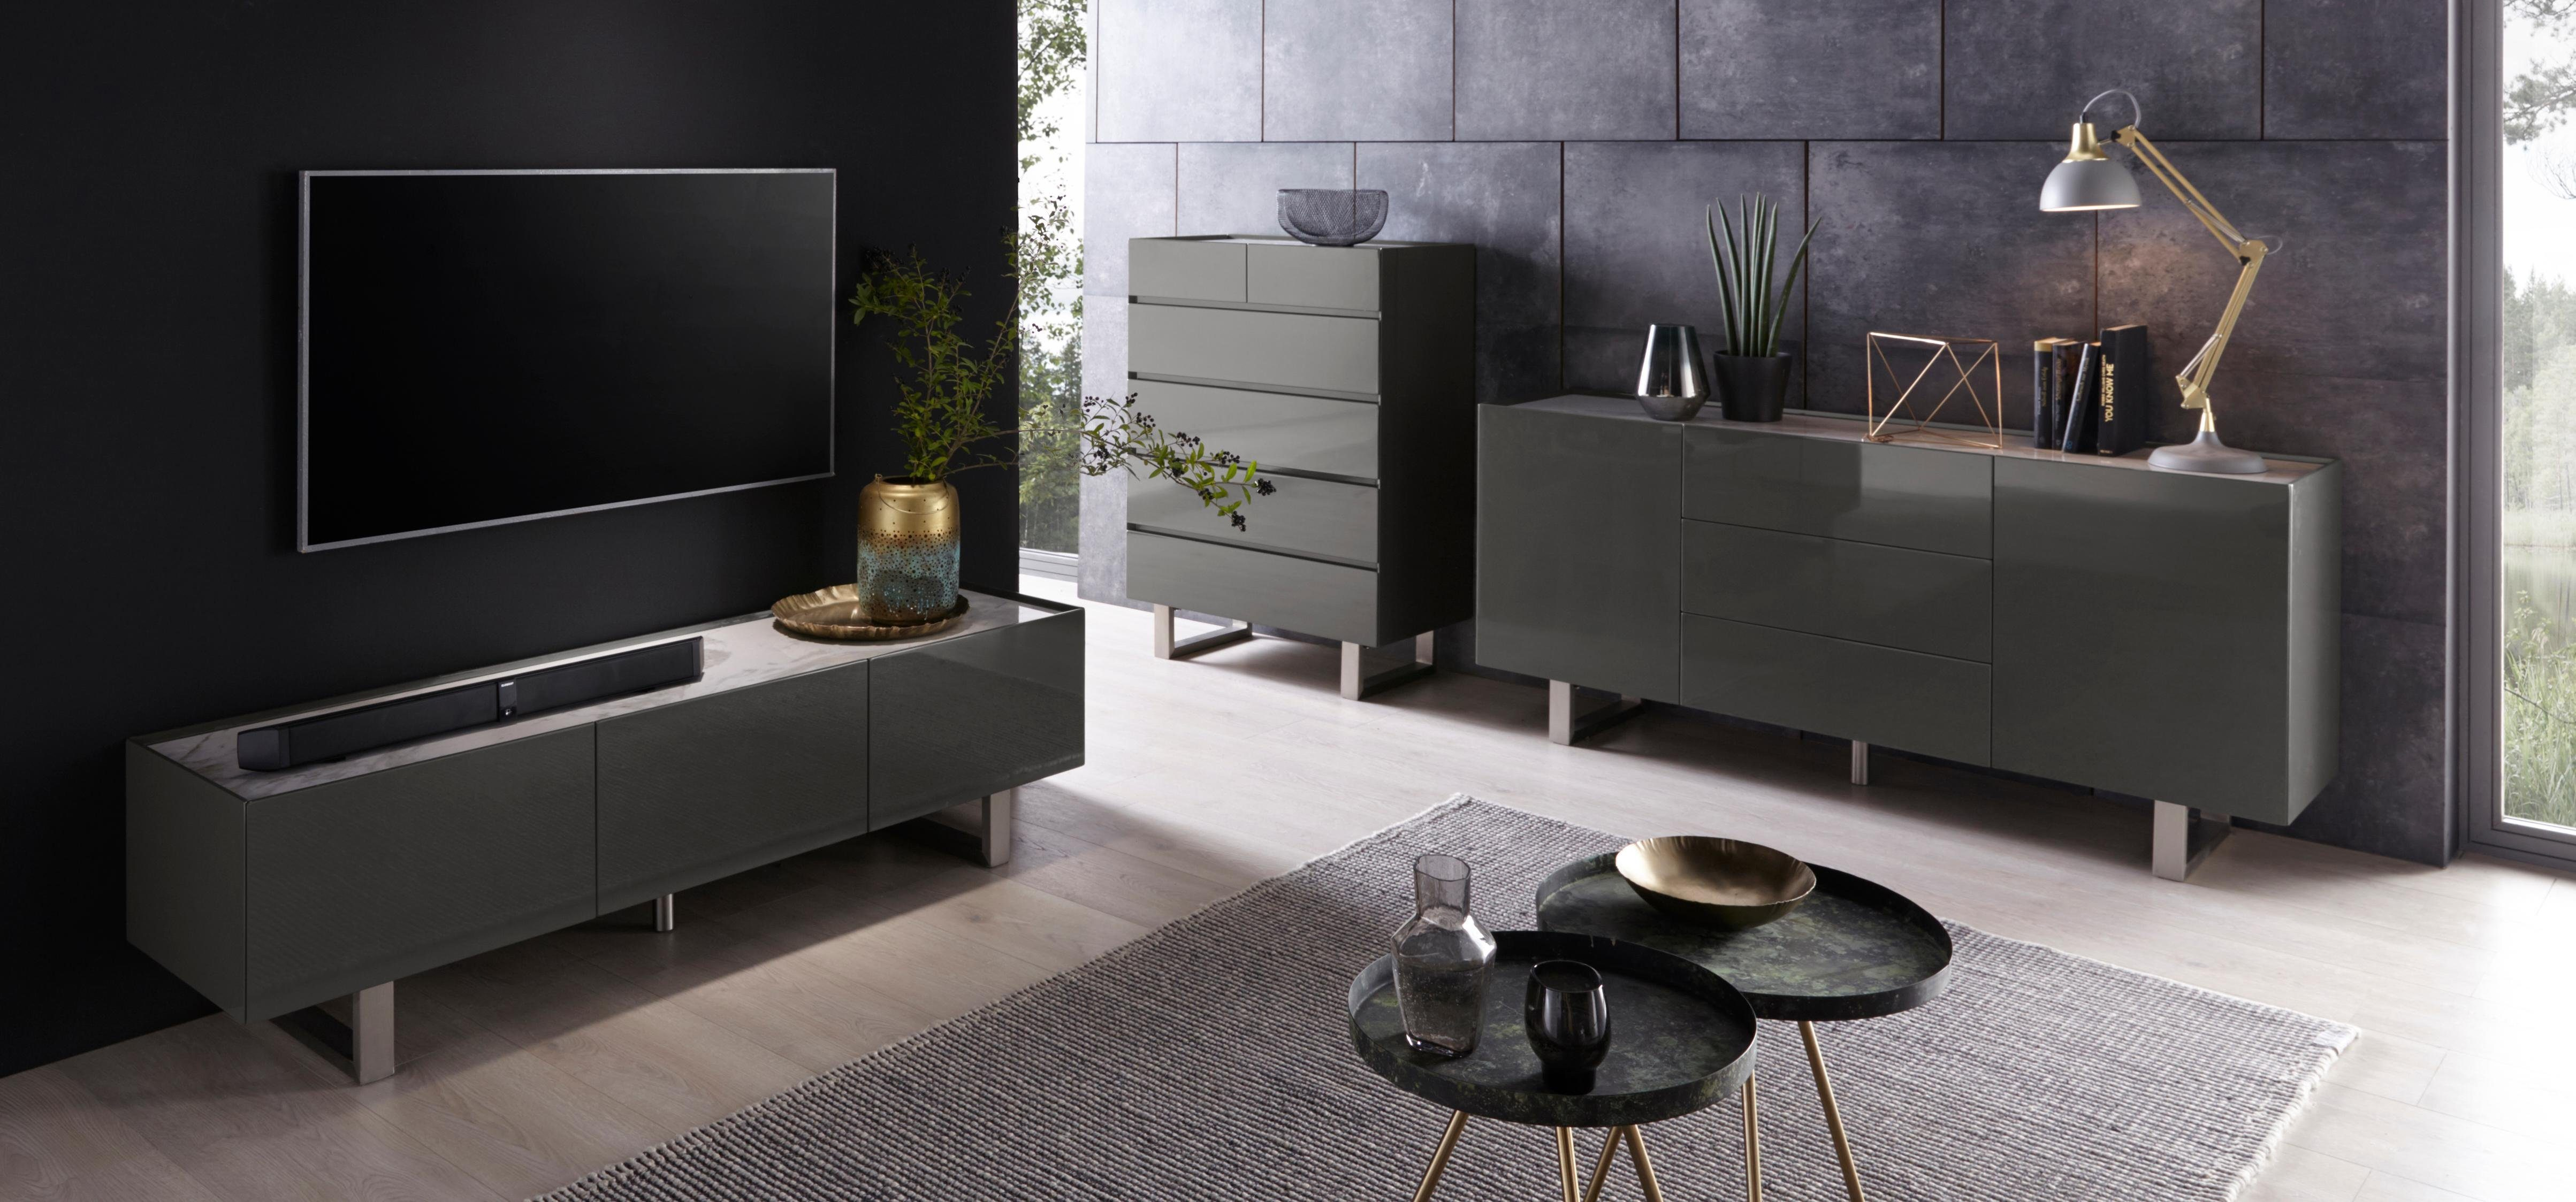 Places of Style Sideboard »Abuja« in Hochglanzlackierung mit Keramik, Breite 165 cm